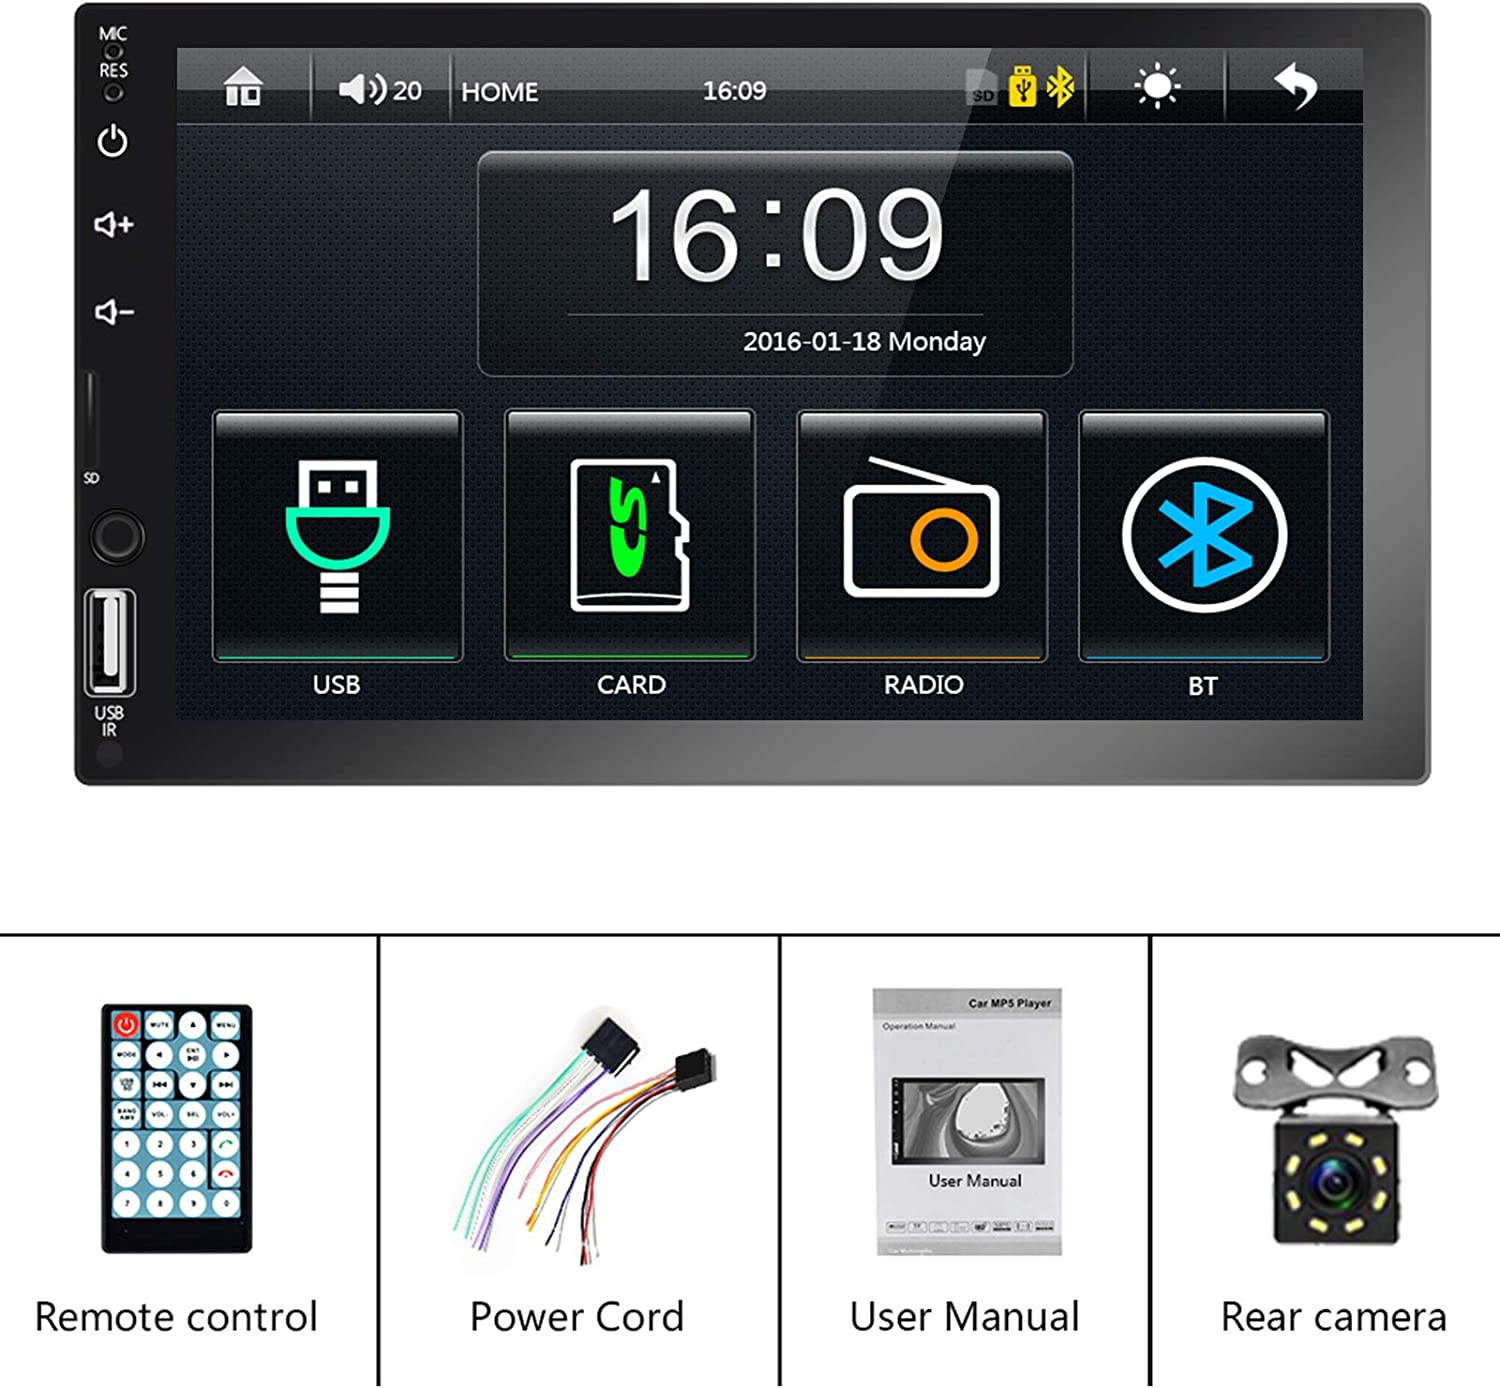 D-Play Car Multimedia Player Android /& iOS Mirror Link with USB//AUX//SD Card Input Double Din car Stereo 7 inch Touch Screen Car Radio with Bluetooth FM 8 LEDs Backup Camera /& Remote Control